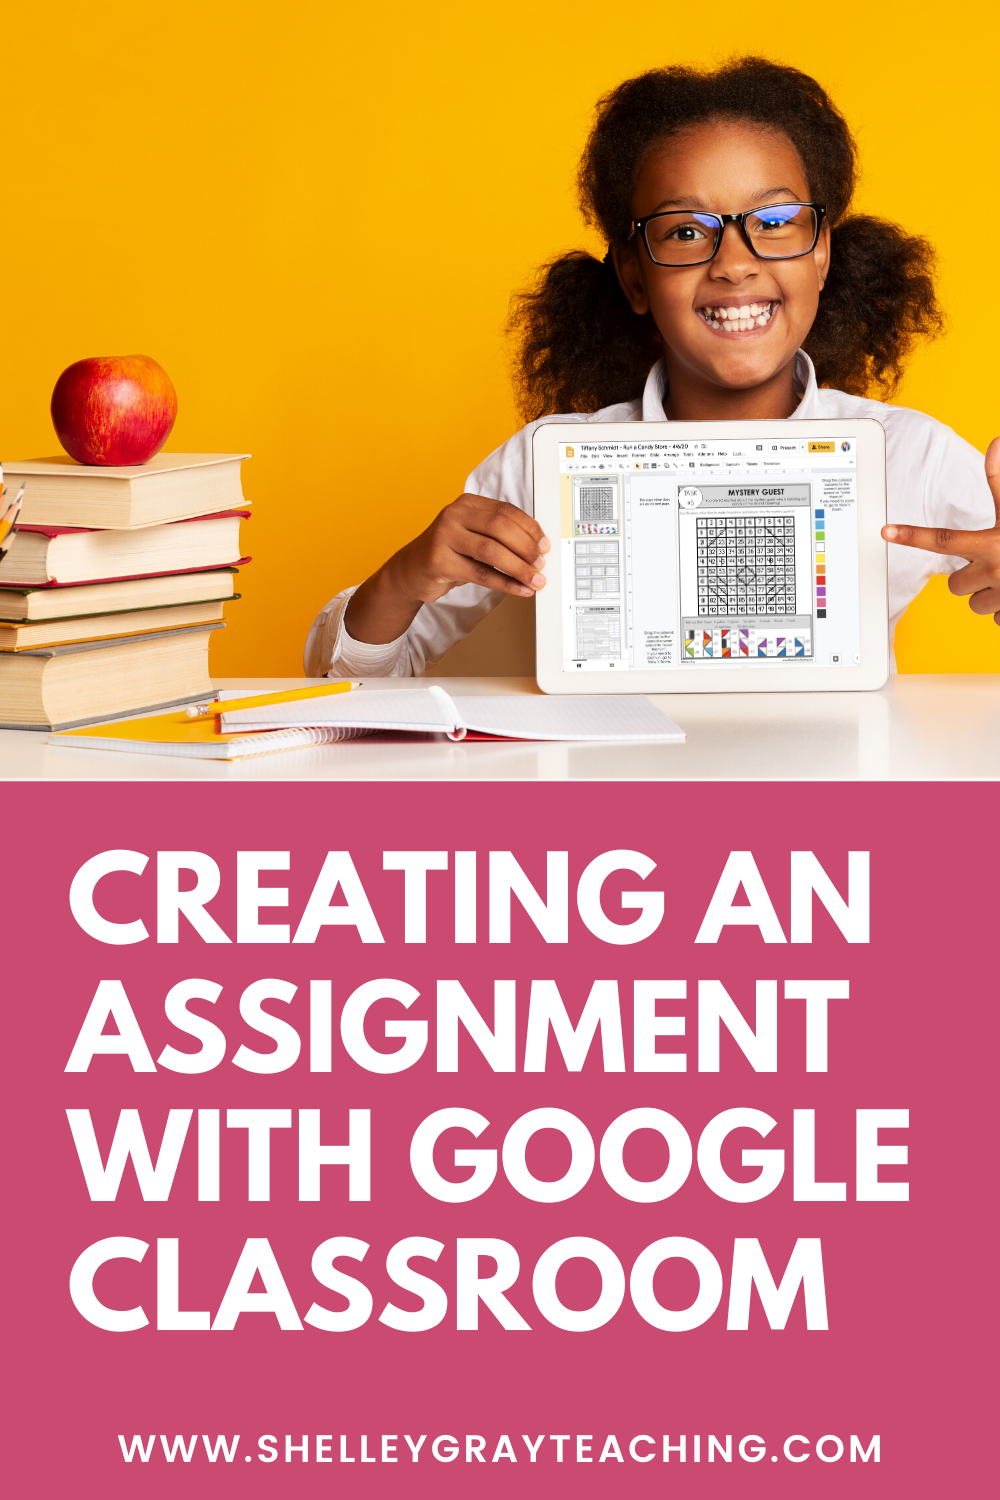 Creating an Assignment with Google Classroom